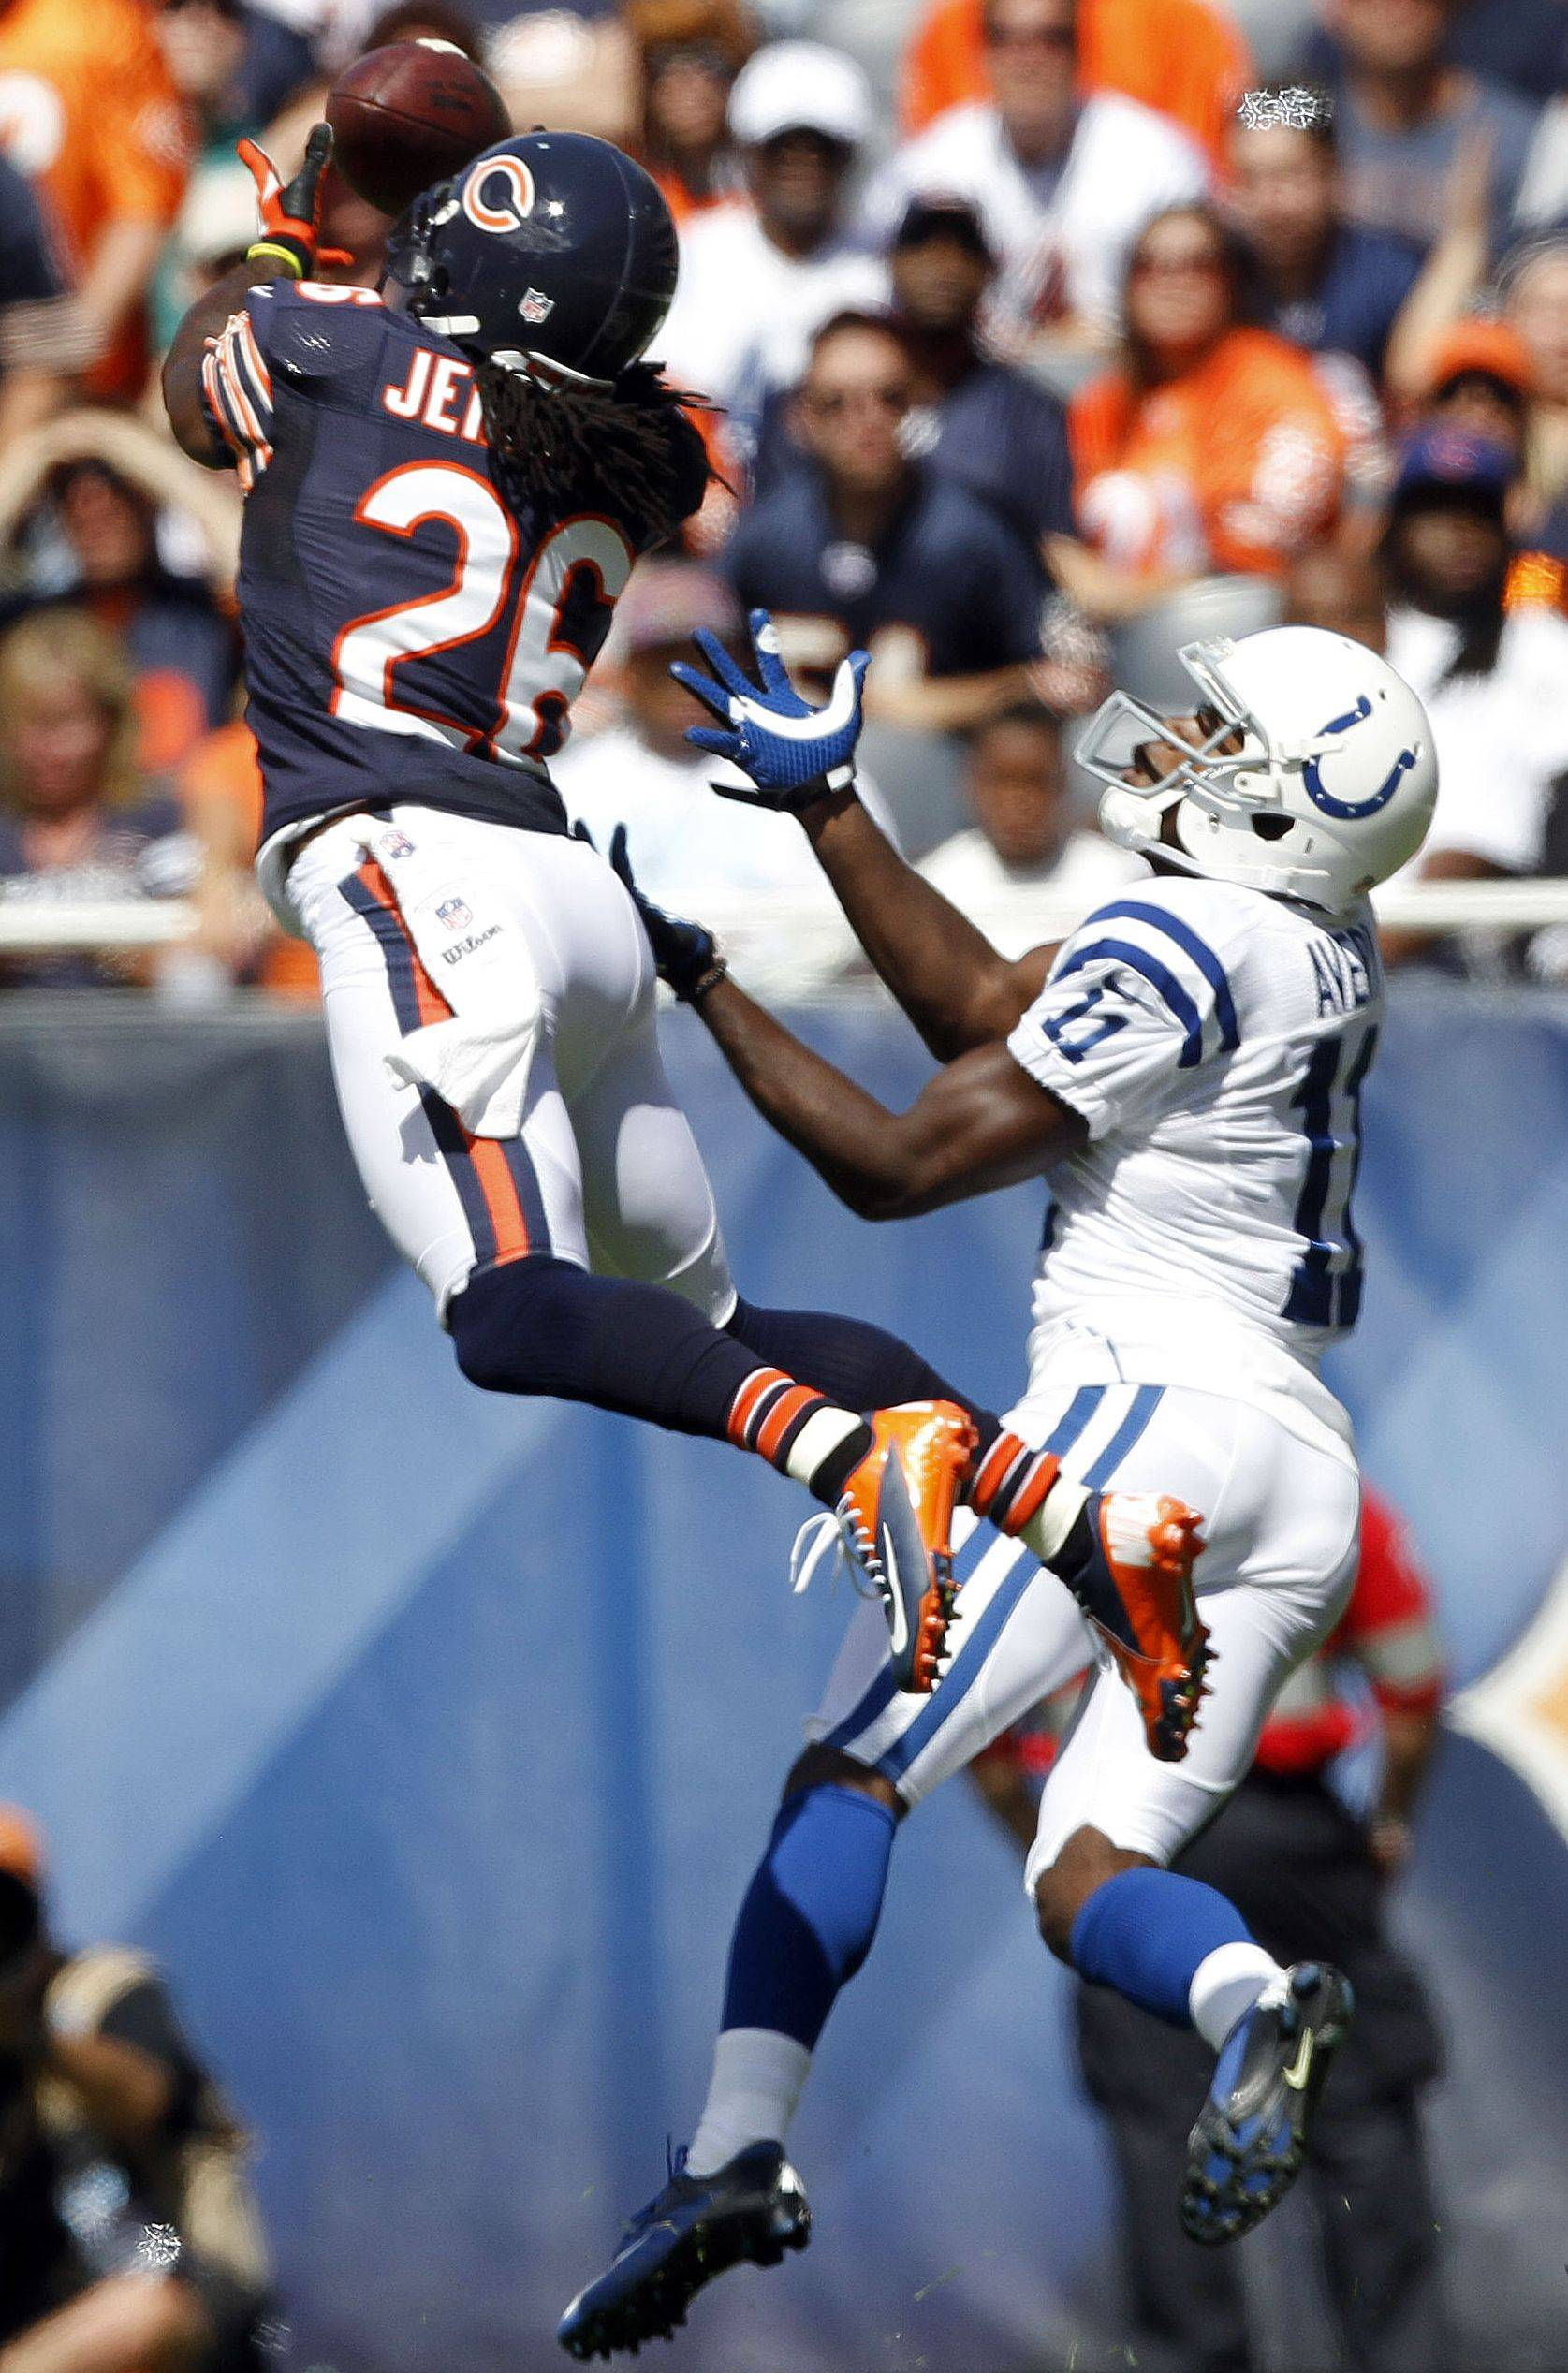 Bears' Jennings stars against his former team